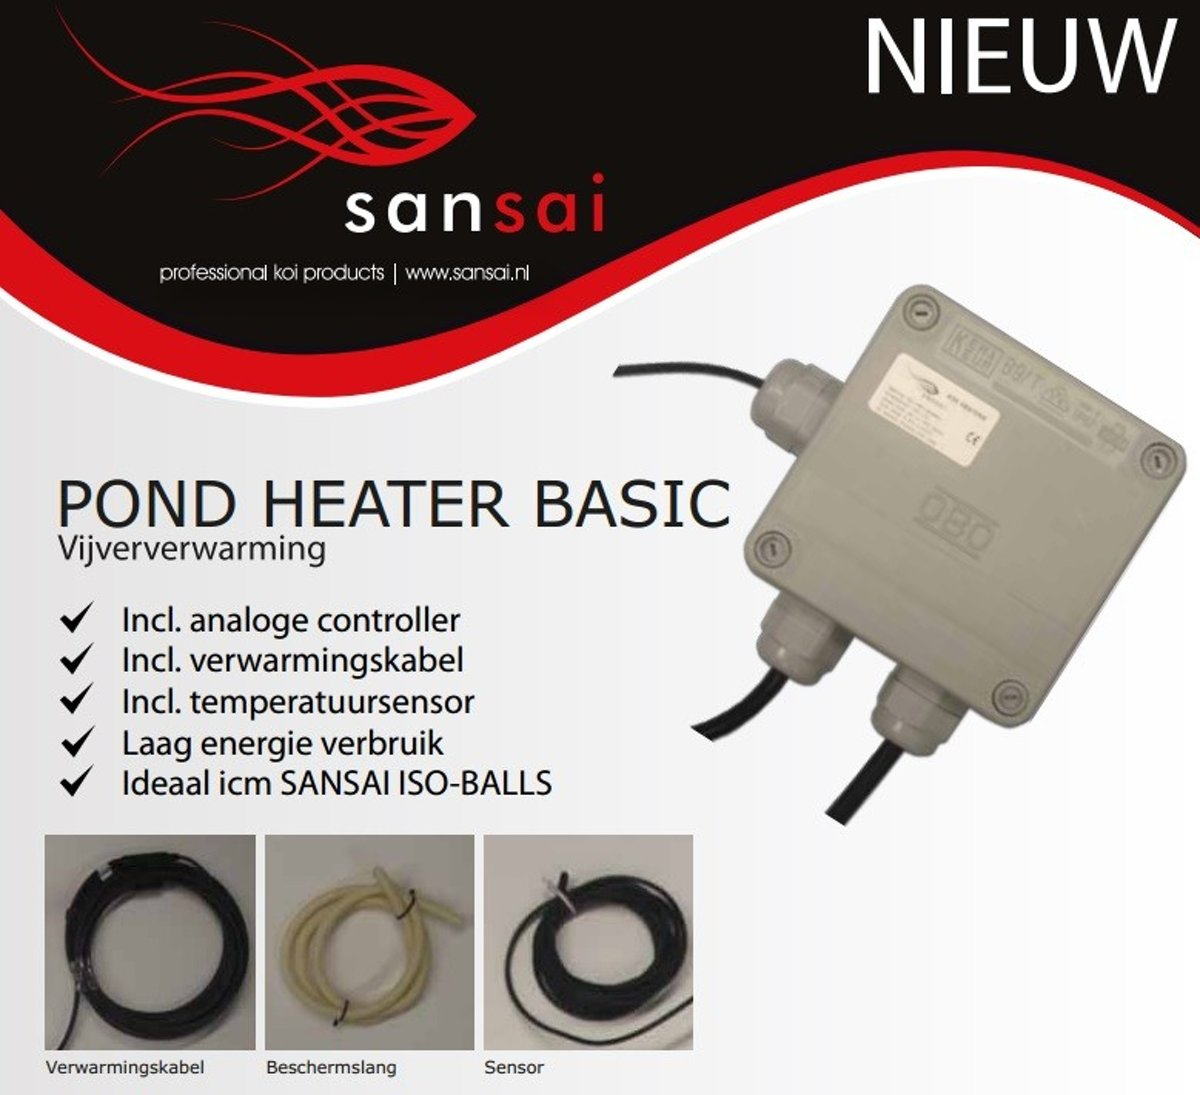 Sansai Pond Heater Basic 180 - 180W, 1m3 - 6m3, 6m kopen